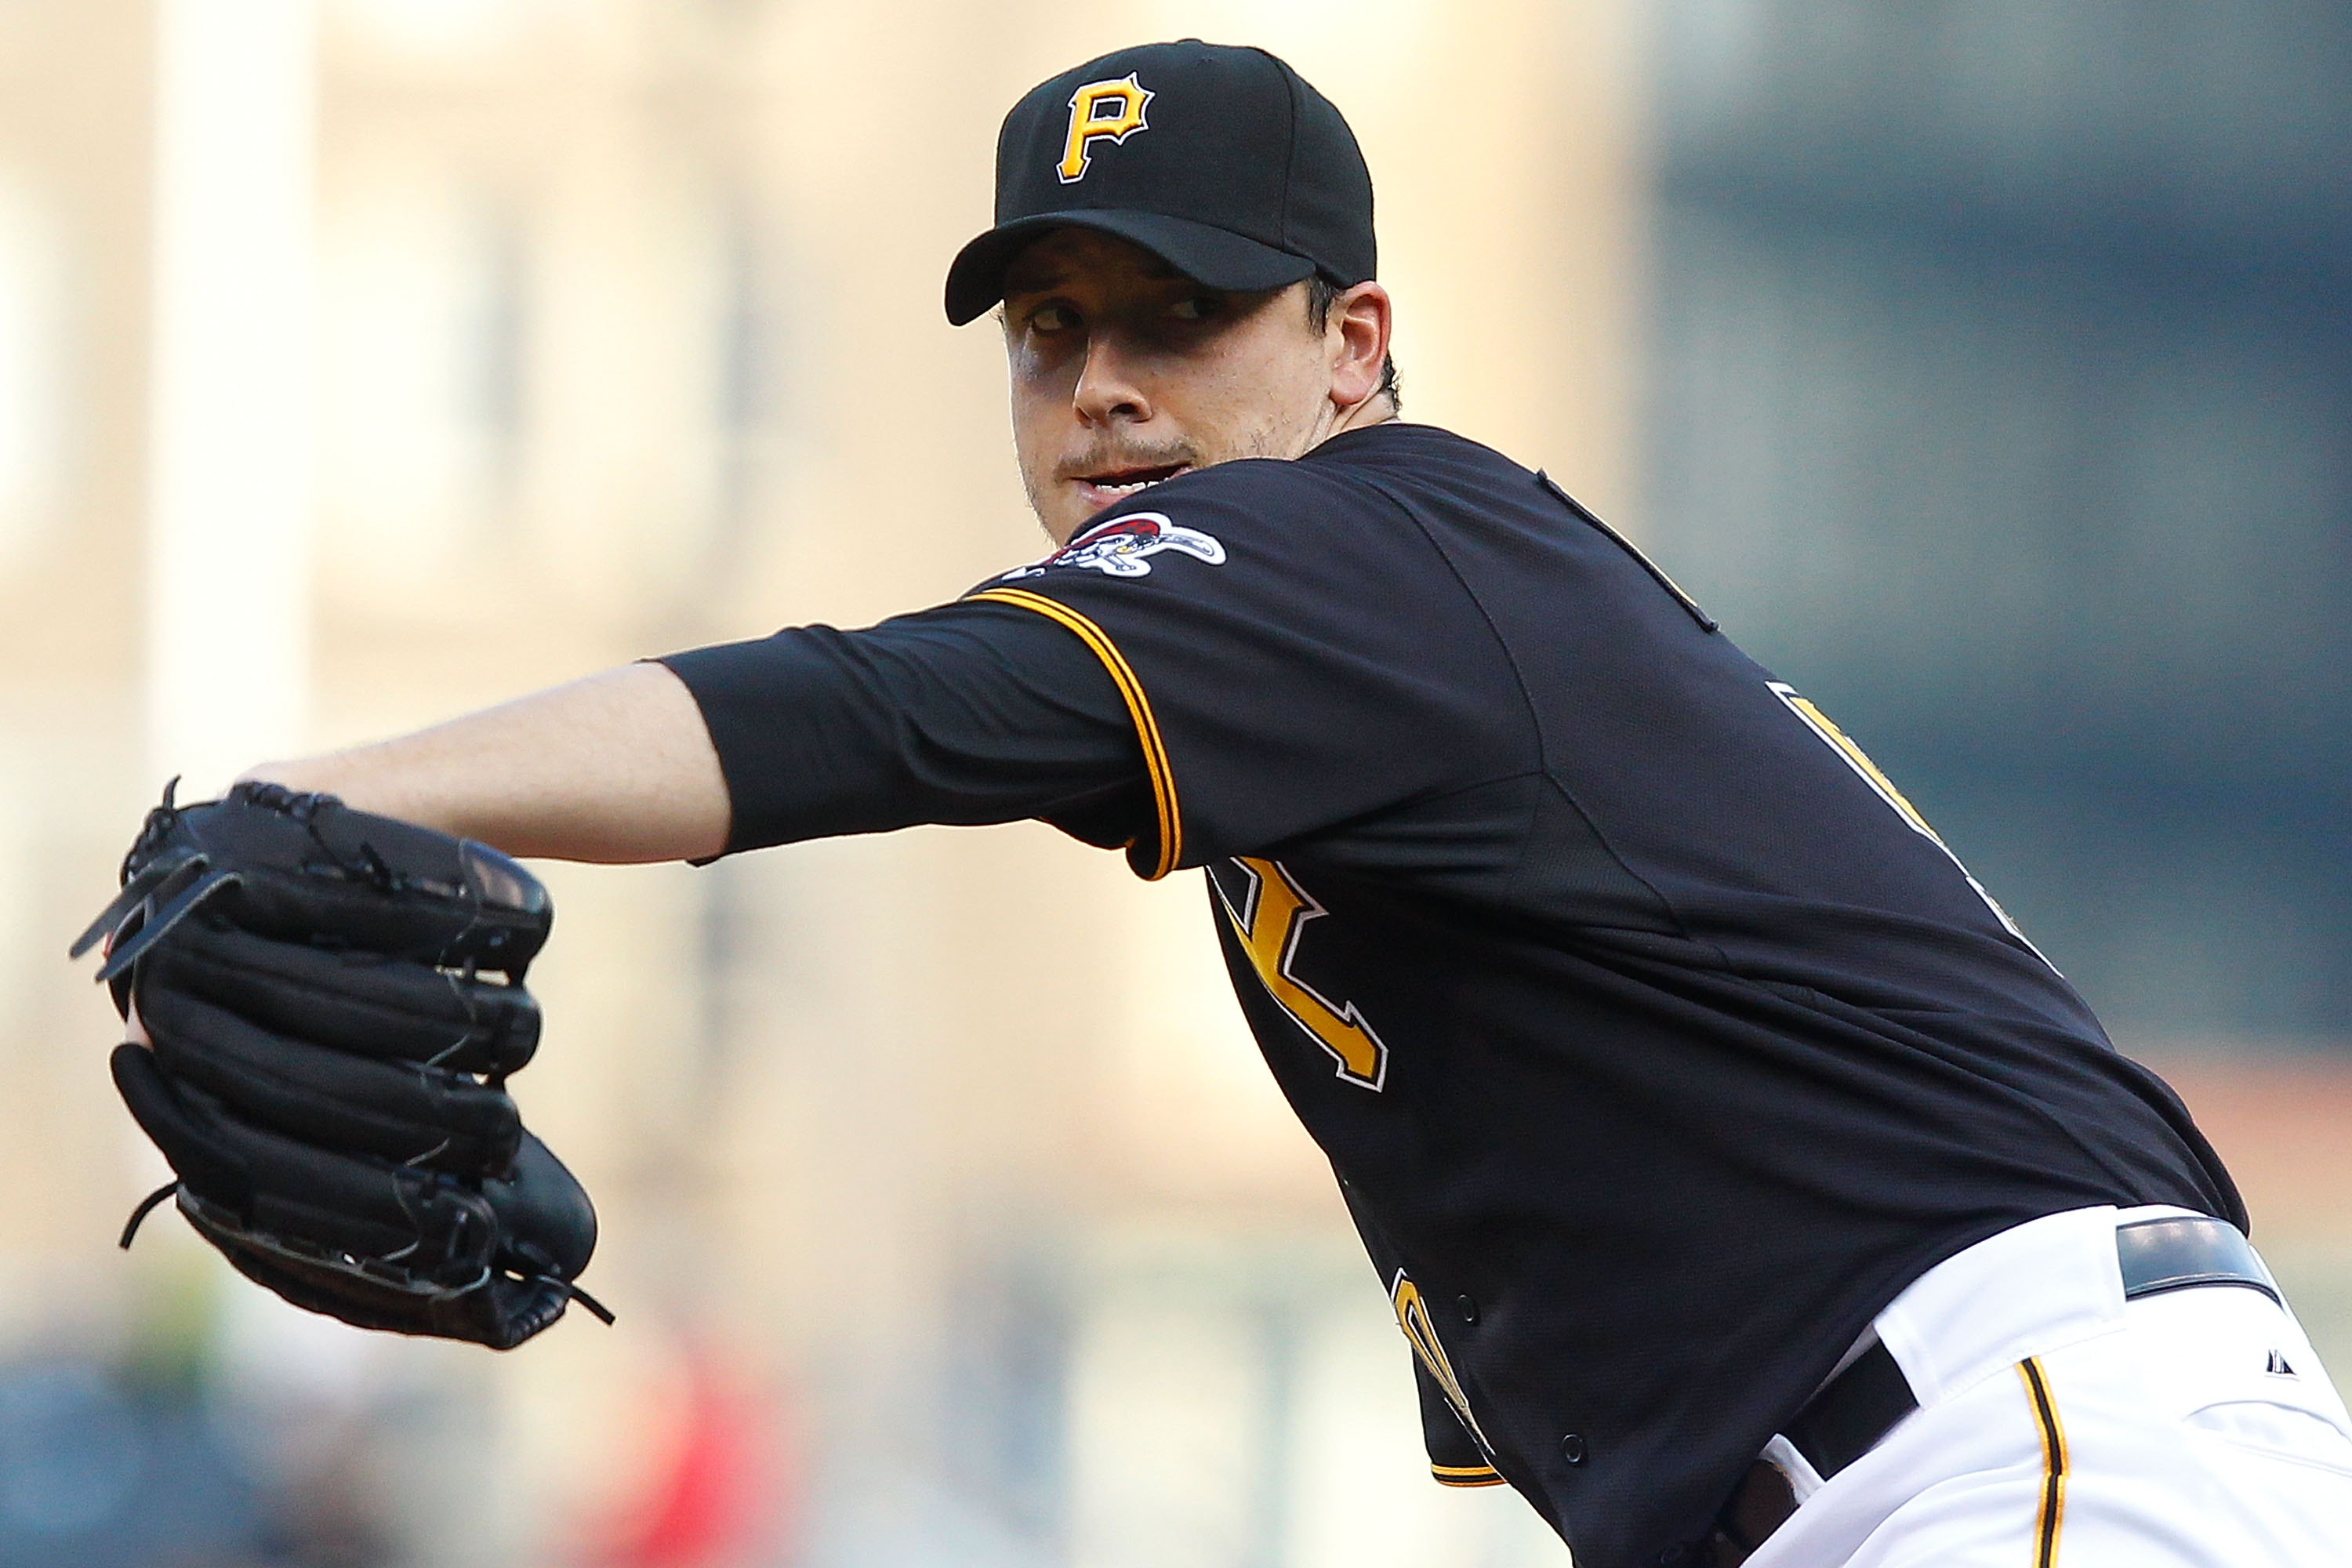 PITTSBURGH - MAY 24:  Charlie Morton #50 of the Pittsburgh Pirates pitches against the Atlanta Braves during the game on May 24, 2011 at PNC Park in Pittsburgh, Pennsylvania.  (Photo by Jared Wickerham/Getty Images)